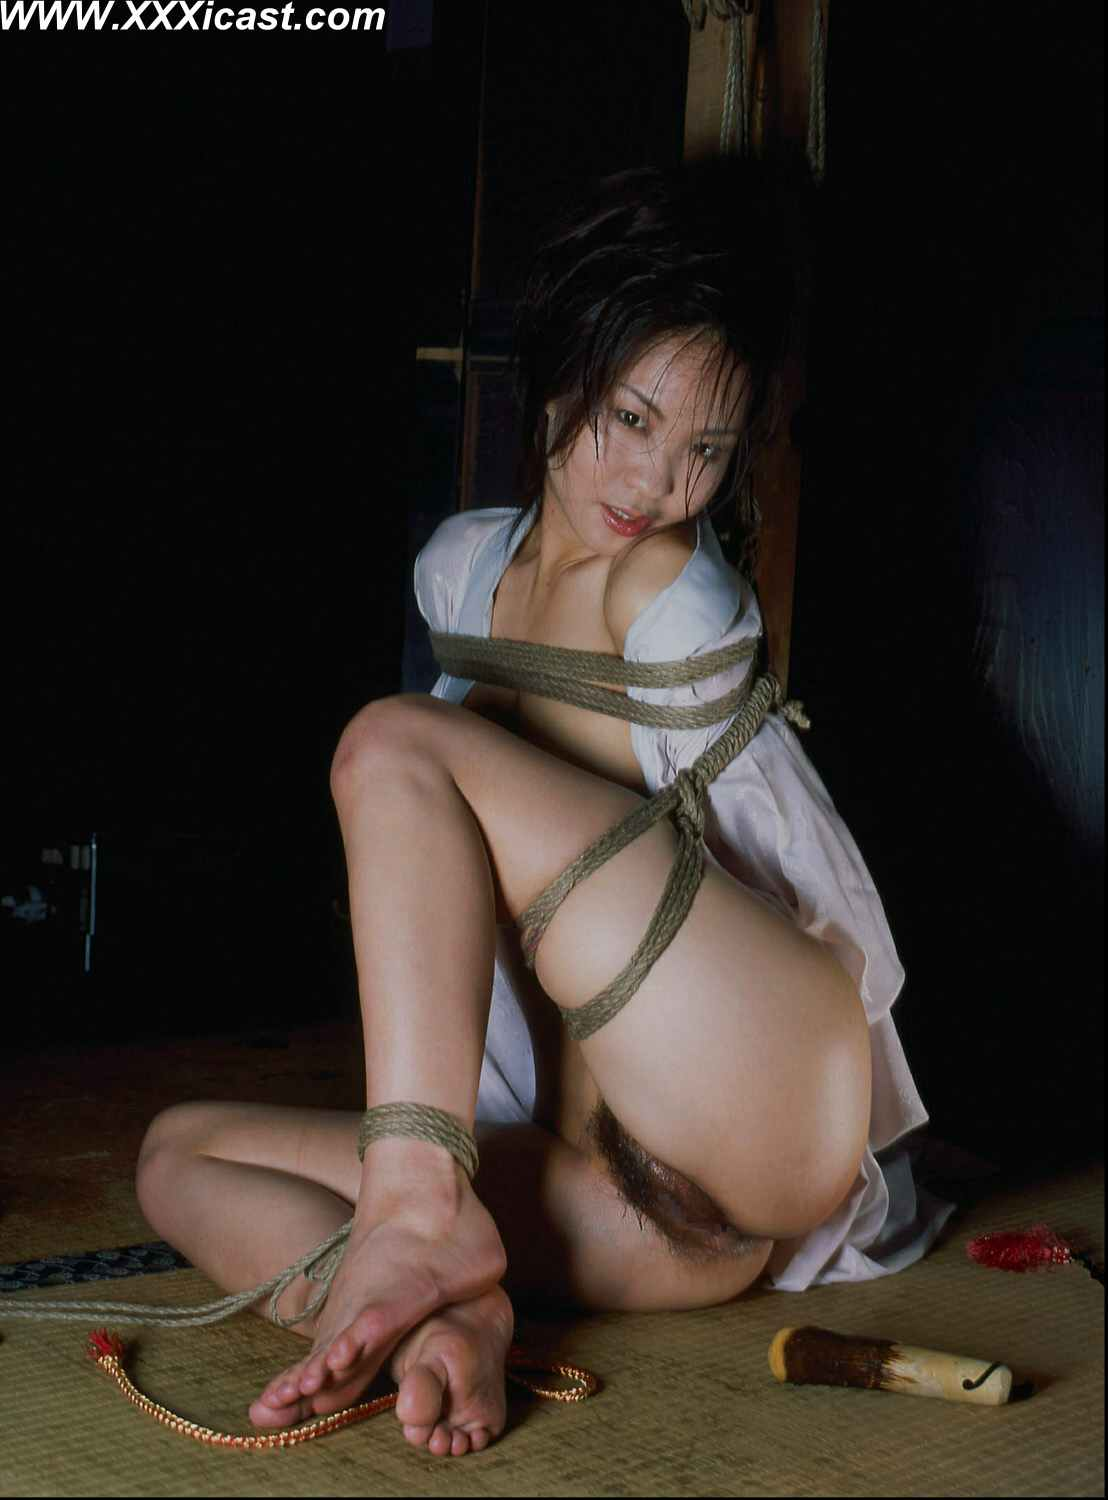 Girls japanese chinese ass pussy upskirt bondage public beautiful blowjob